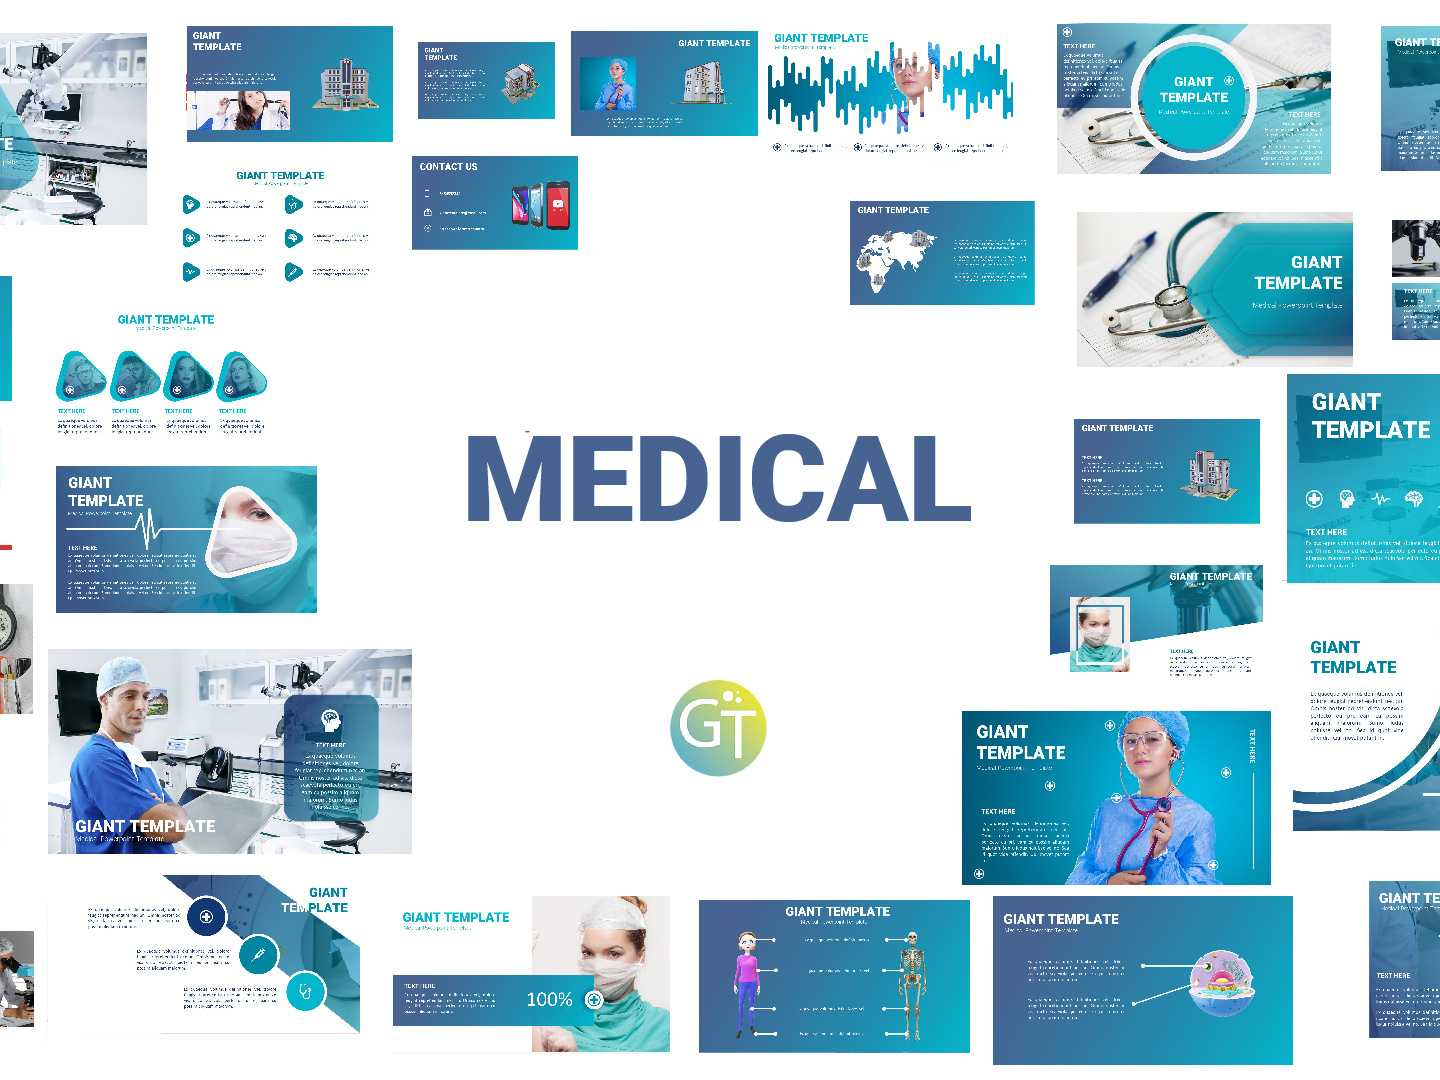 Medical Powerpoint Templates Free Downloadgiant Template Within Powerpoint Animation Templates Free Download